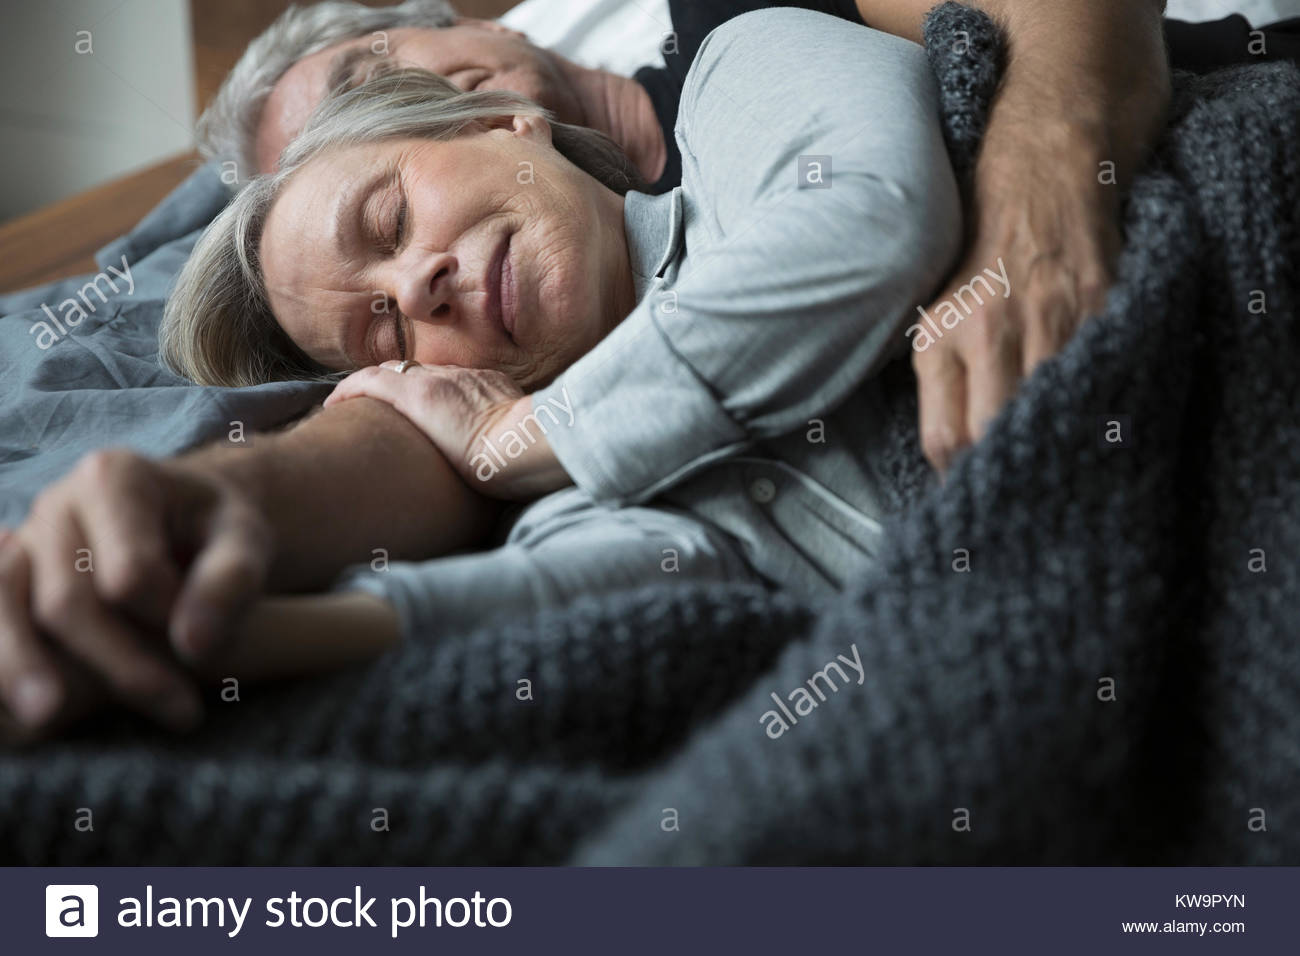 Serene woman sleeping in bed Photo Stock